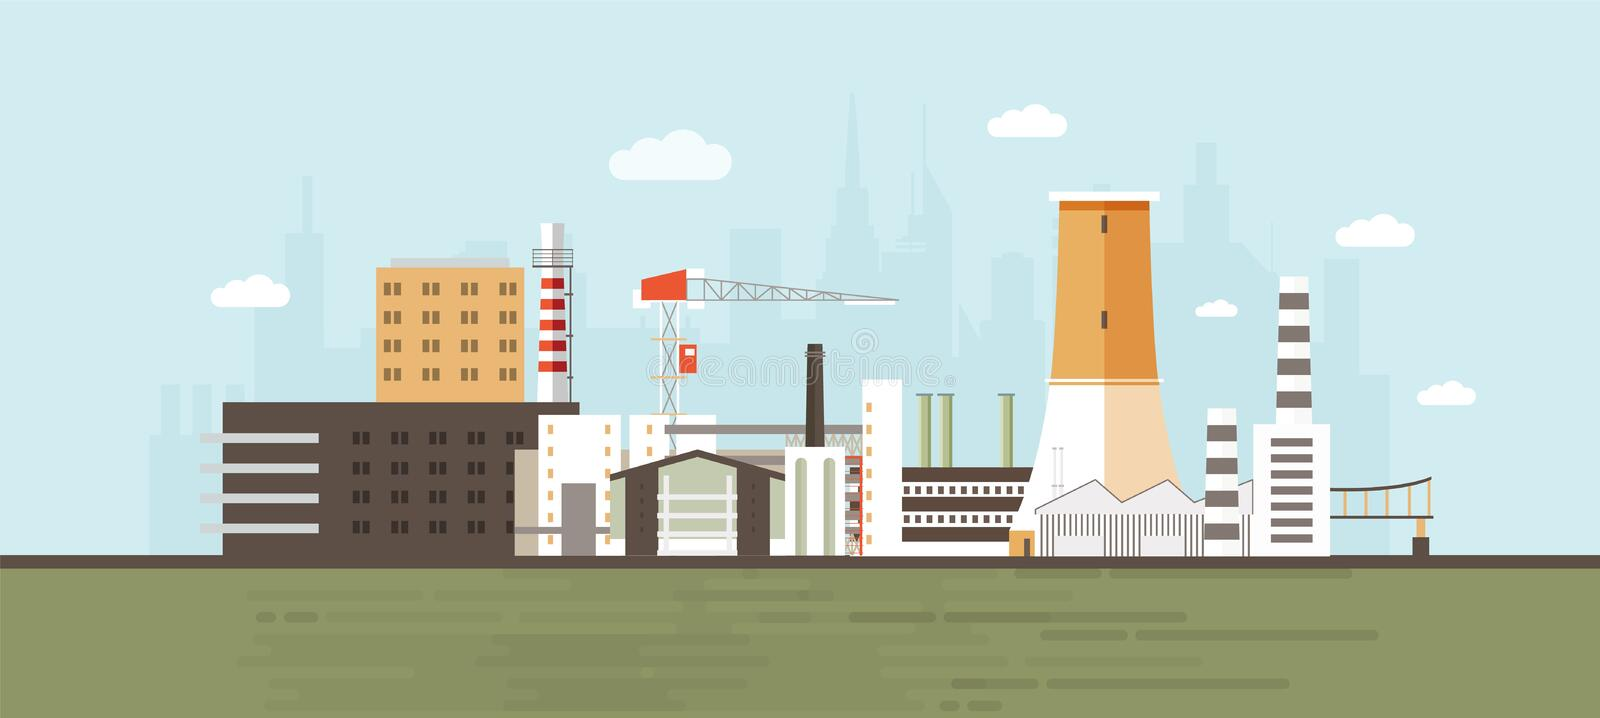 Industrial park, site, zone or area with manufacturing buildings and facilities, power plants and factories, crane. Cooling tower against city skyline in stock illustration